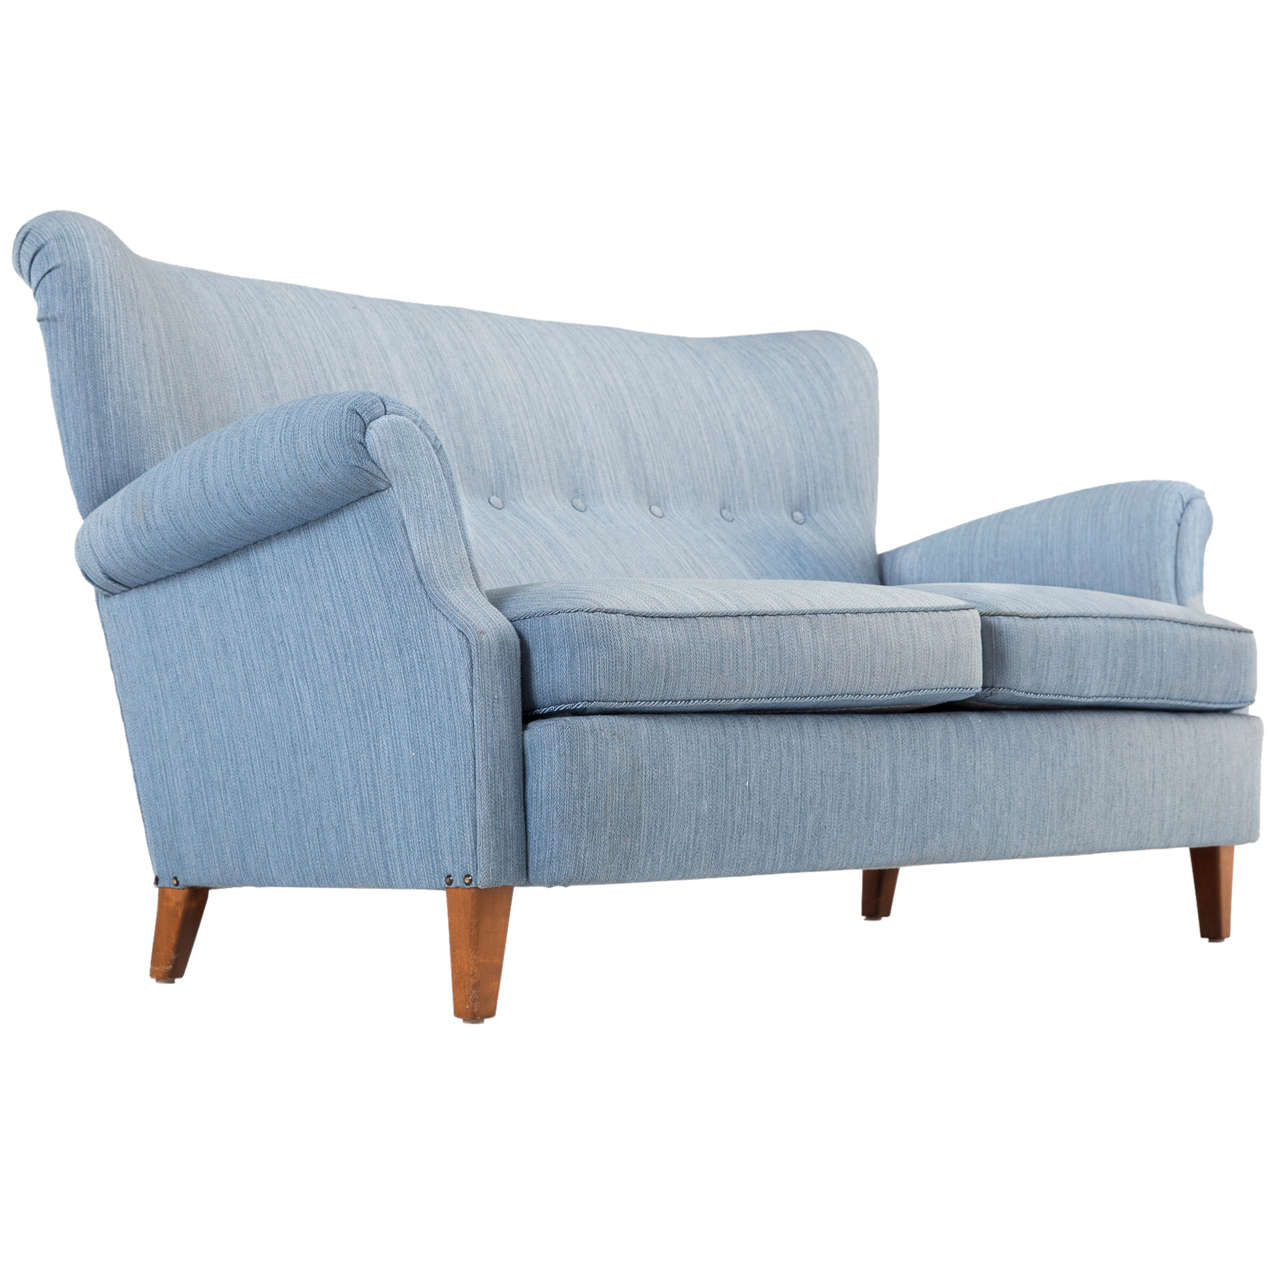 Swedish Blue Two-Seat Sofa, 1950s For Sale